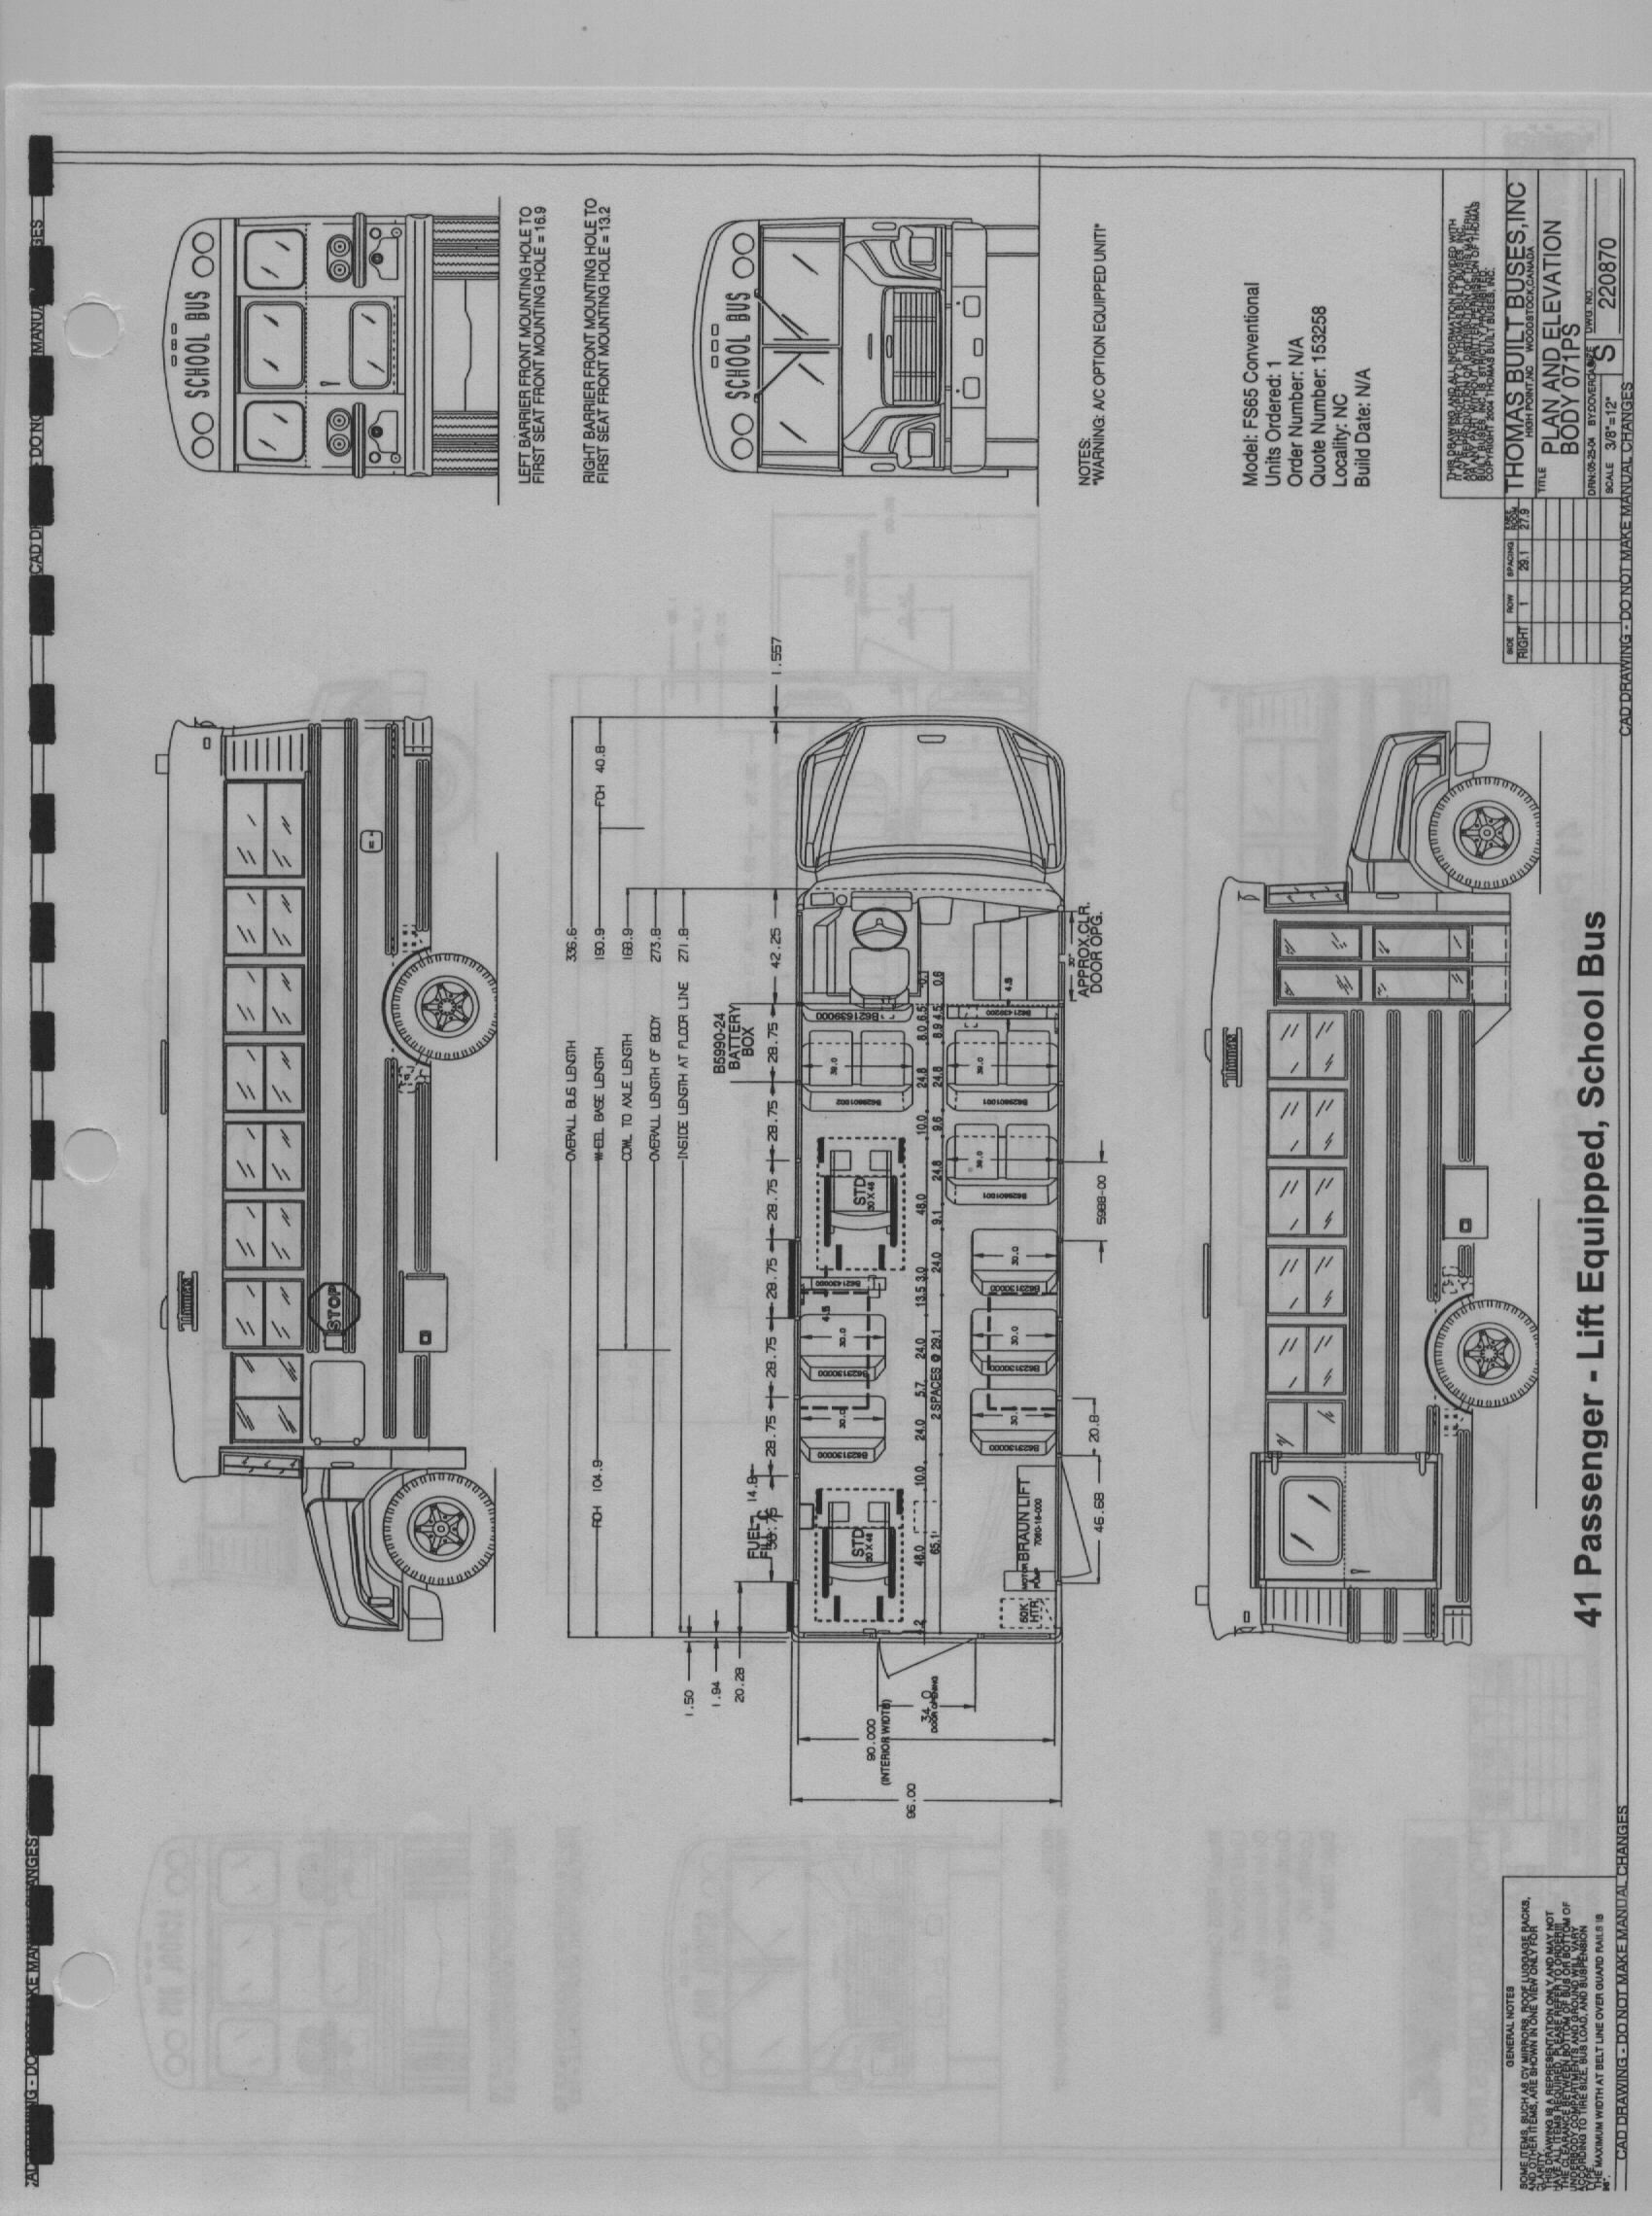 Thomas C2 Wiring Diagram